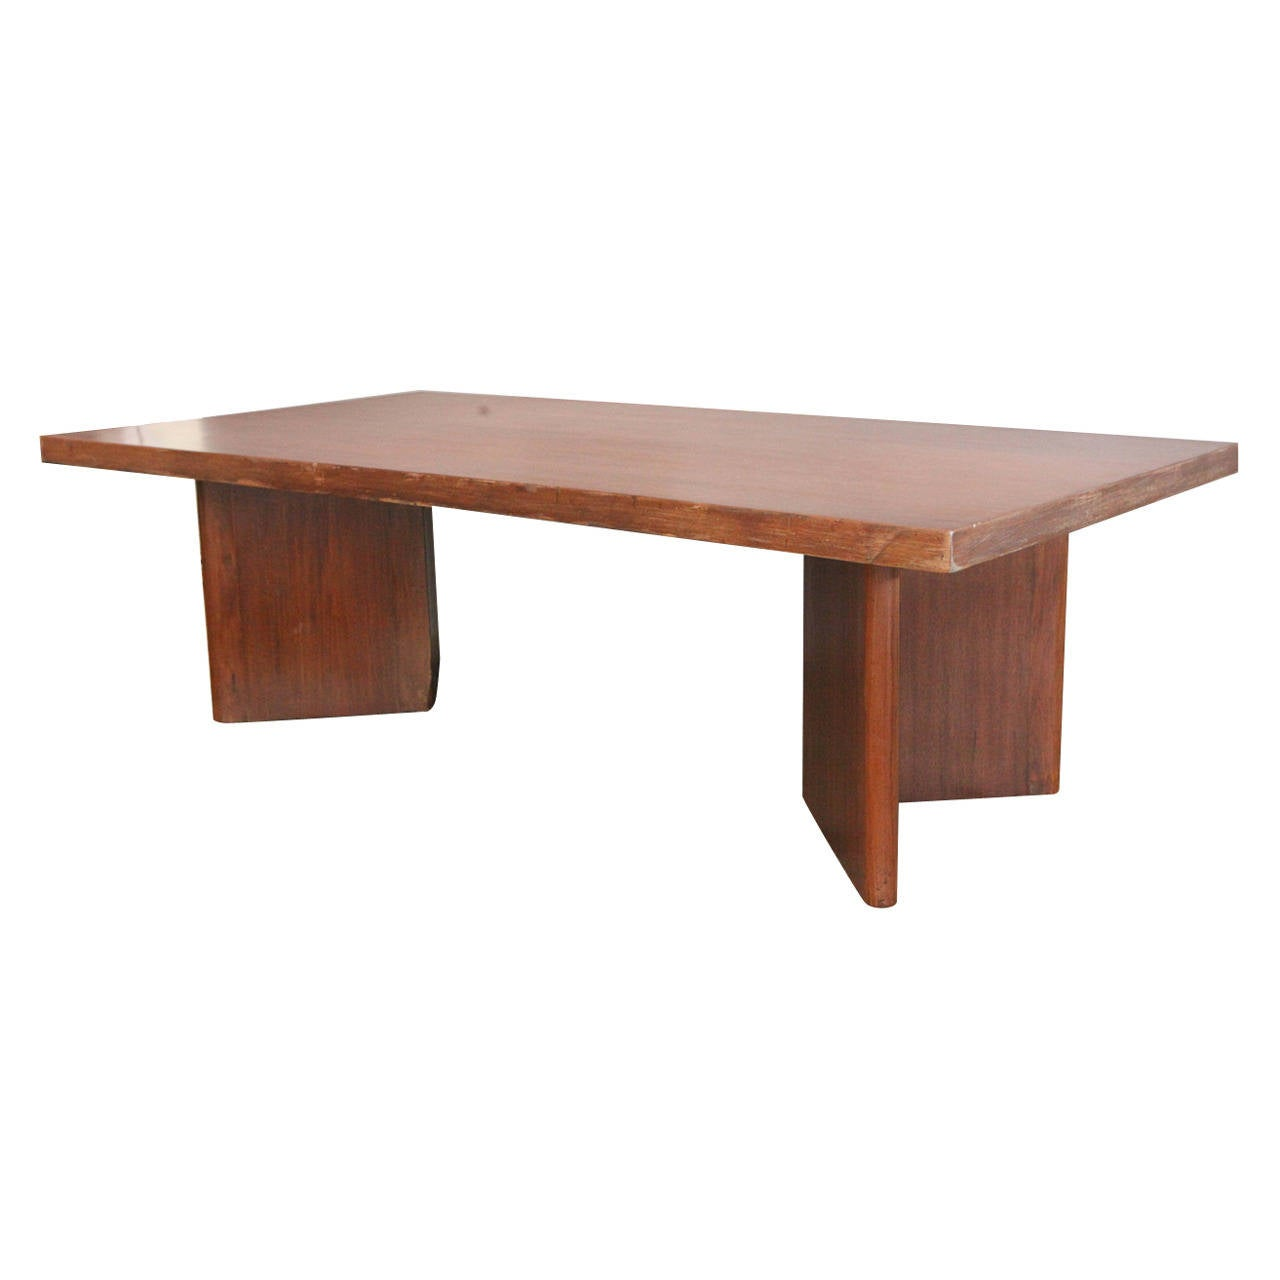 Pierre jeanneret university library table chandigarh